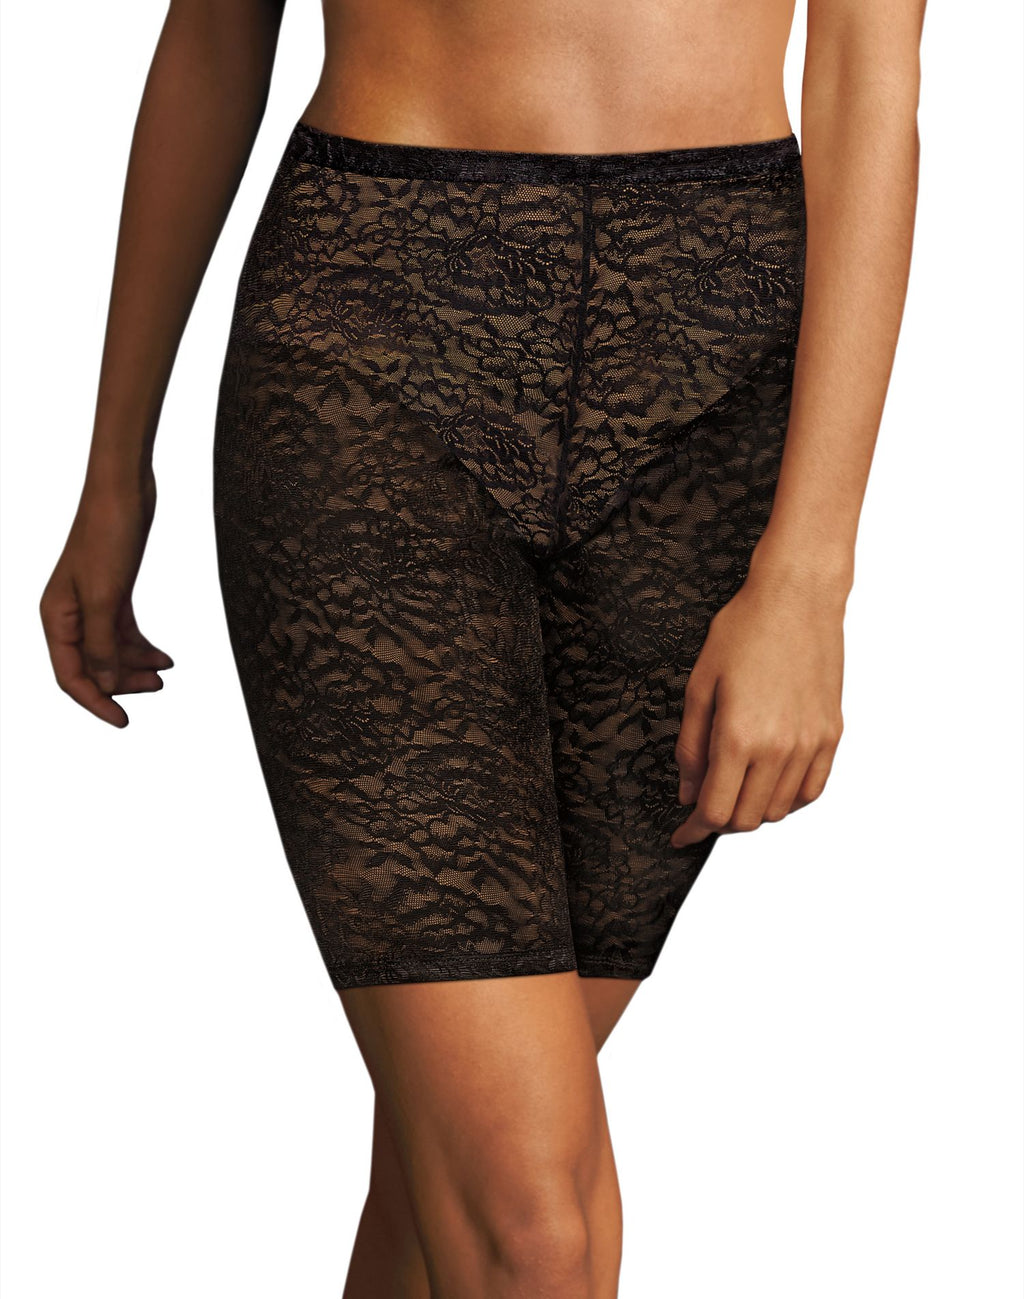 Maidenform Womens Sexy Lace Firm Control Thigh Slimmer